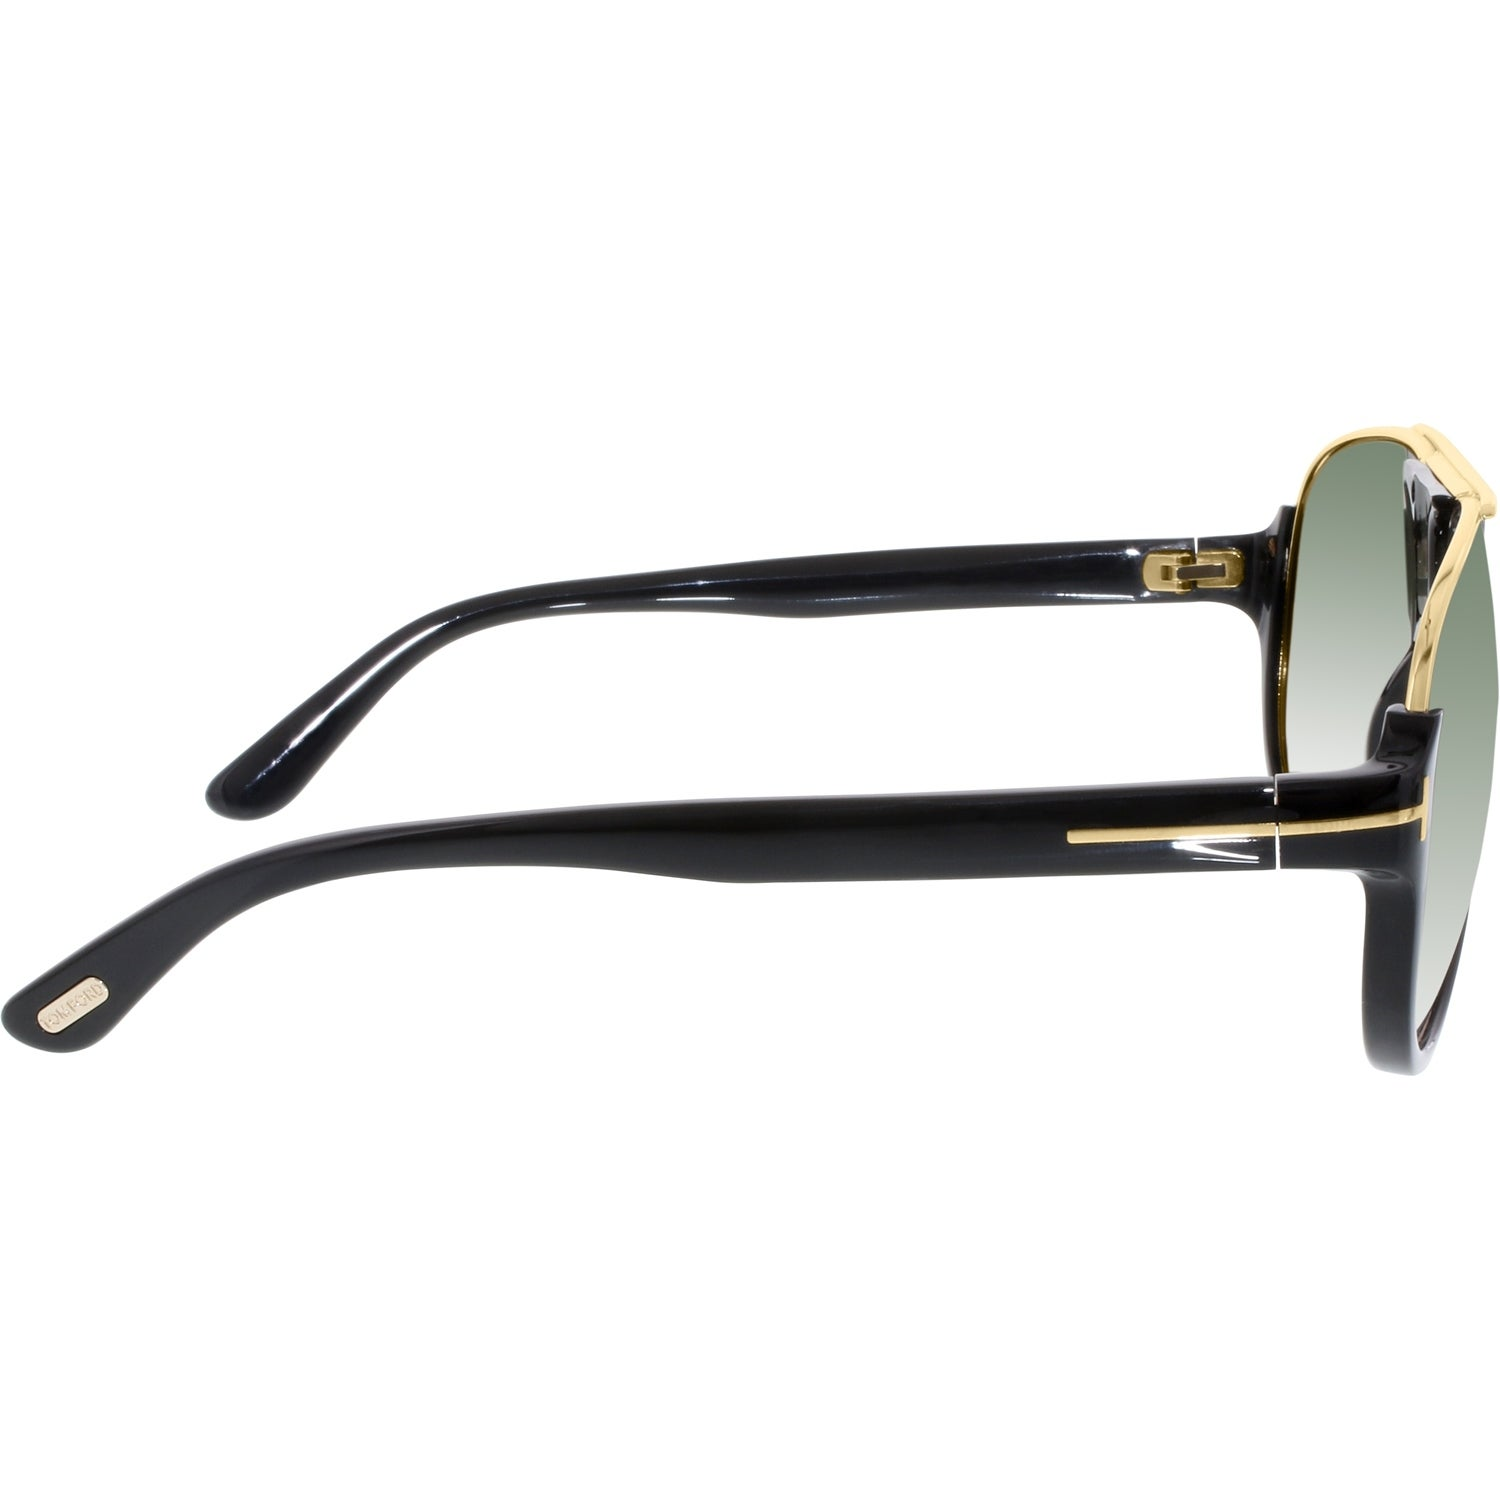 6c903f3a4 Shop Tom Ford Men's Gradient Dimitry FT0334-01P-59 Black Aviator Sunglasses  - Ships To Canada - Overstock - 18901403